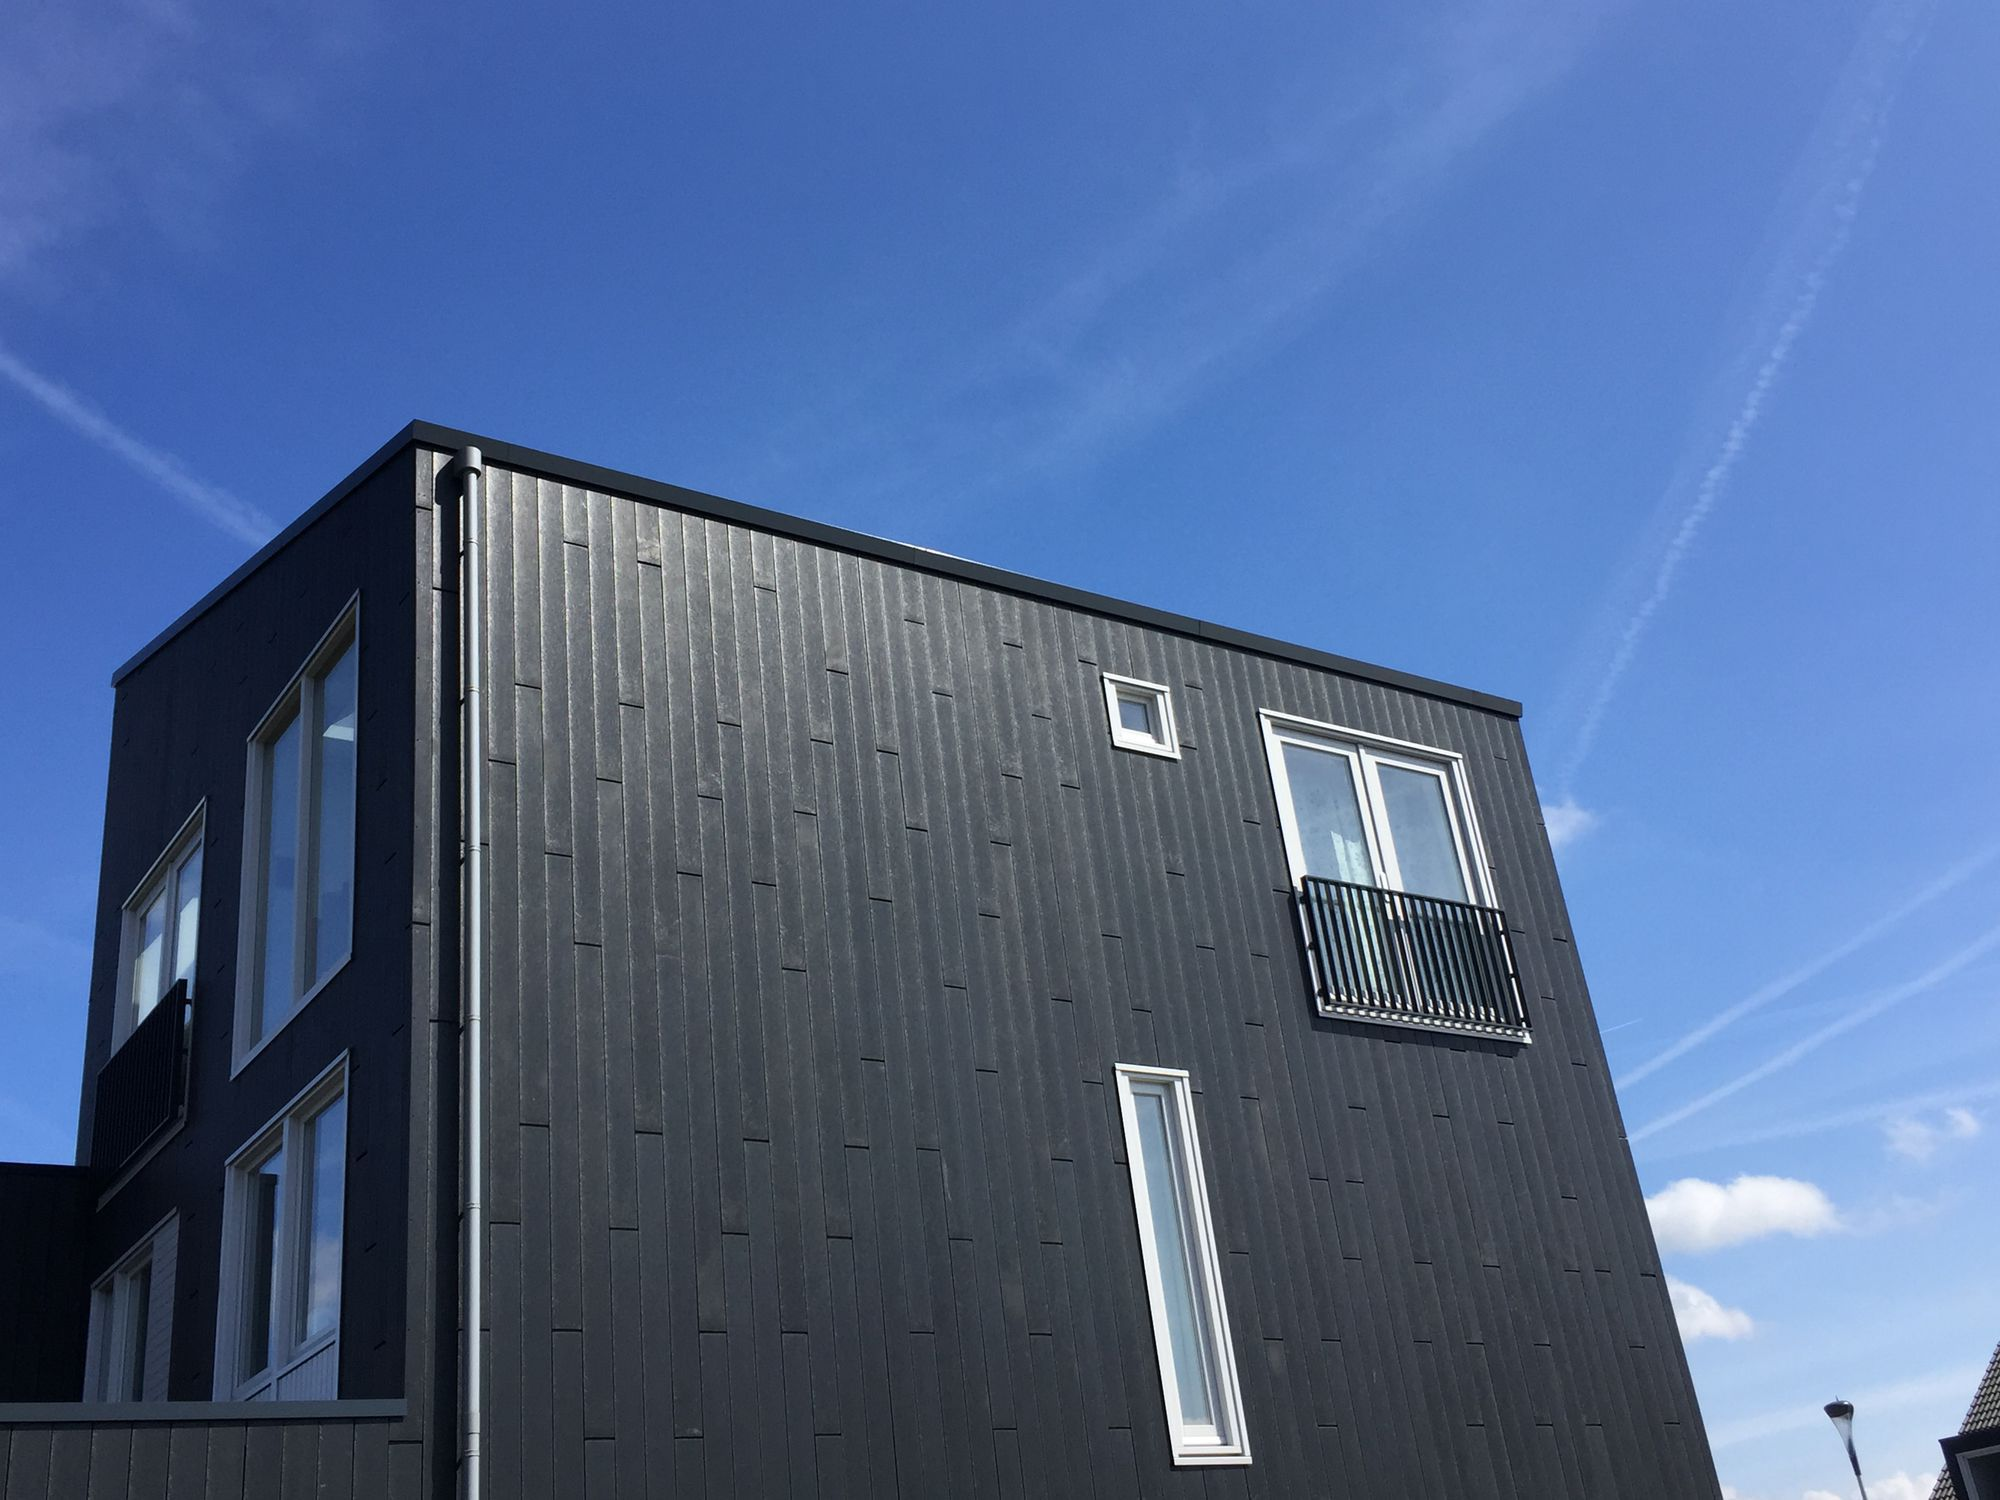 Recycled plastic cladding / textured / panel / wood look - Lankhorst